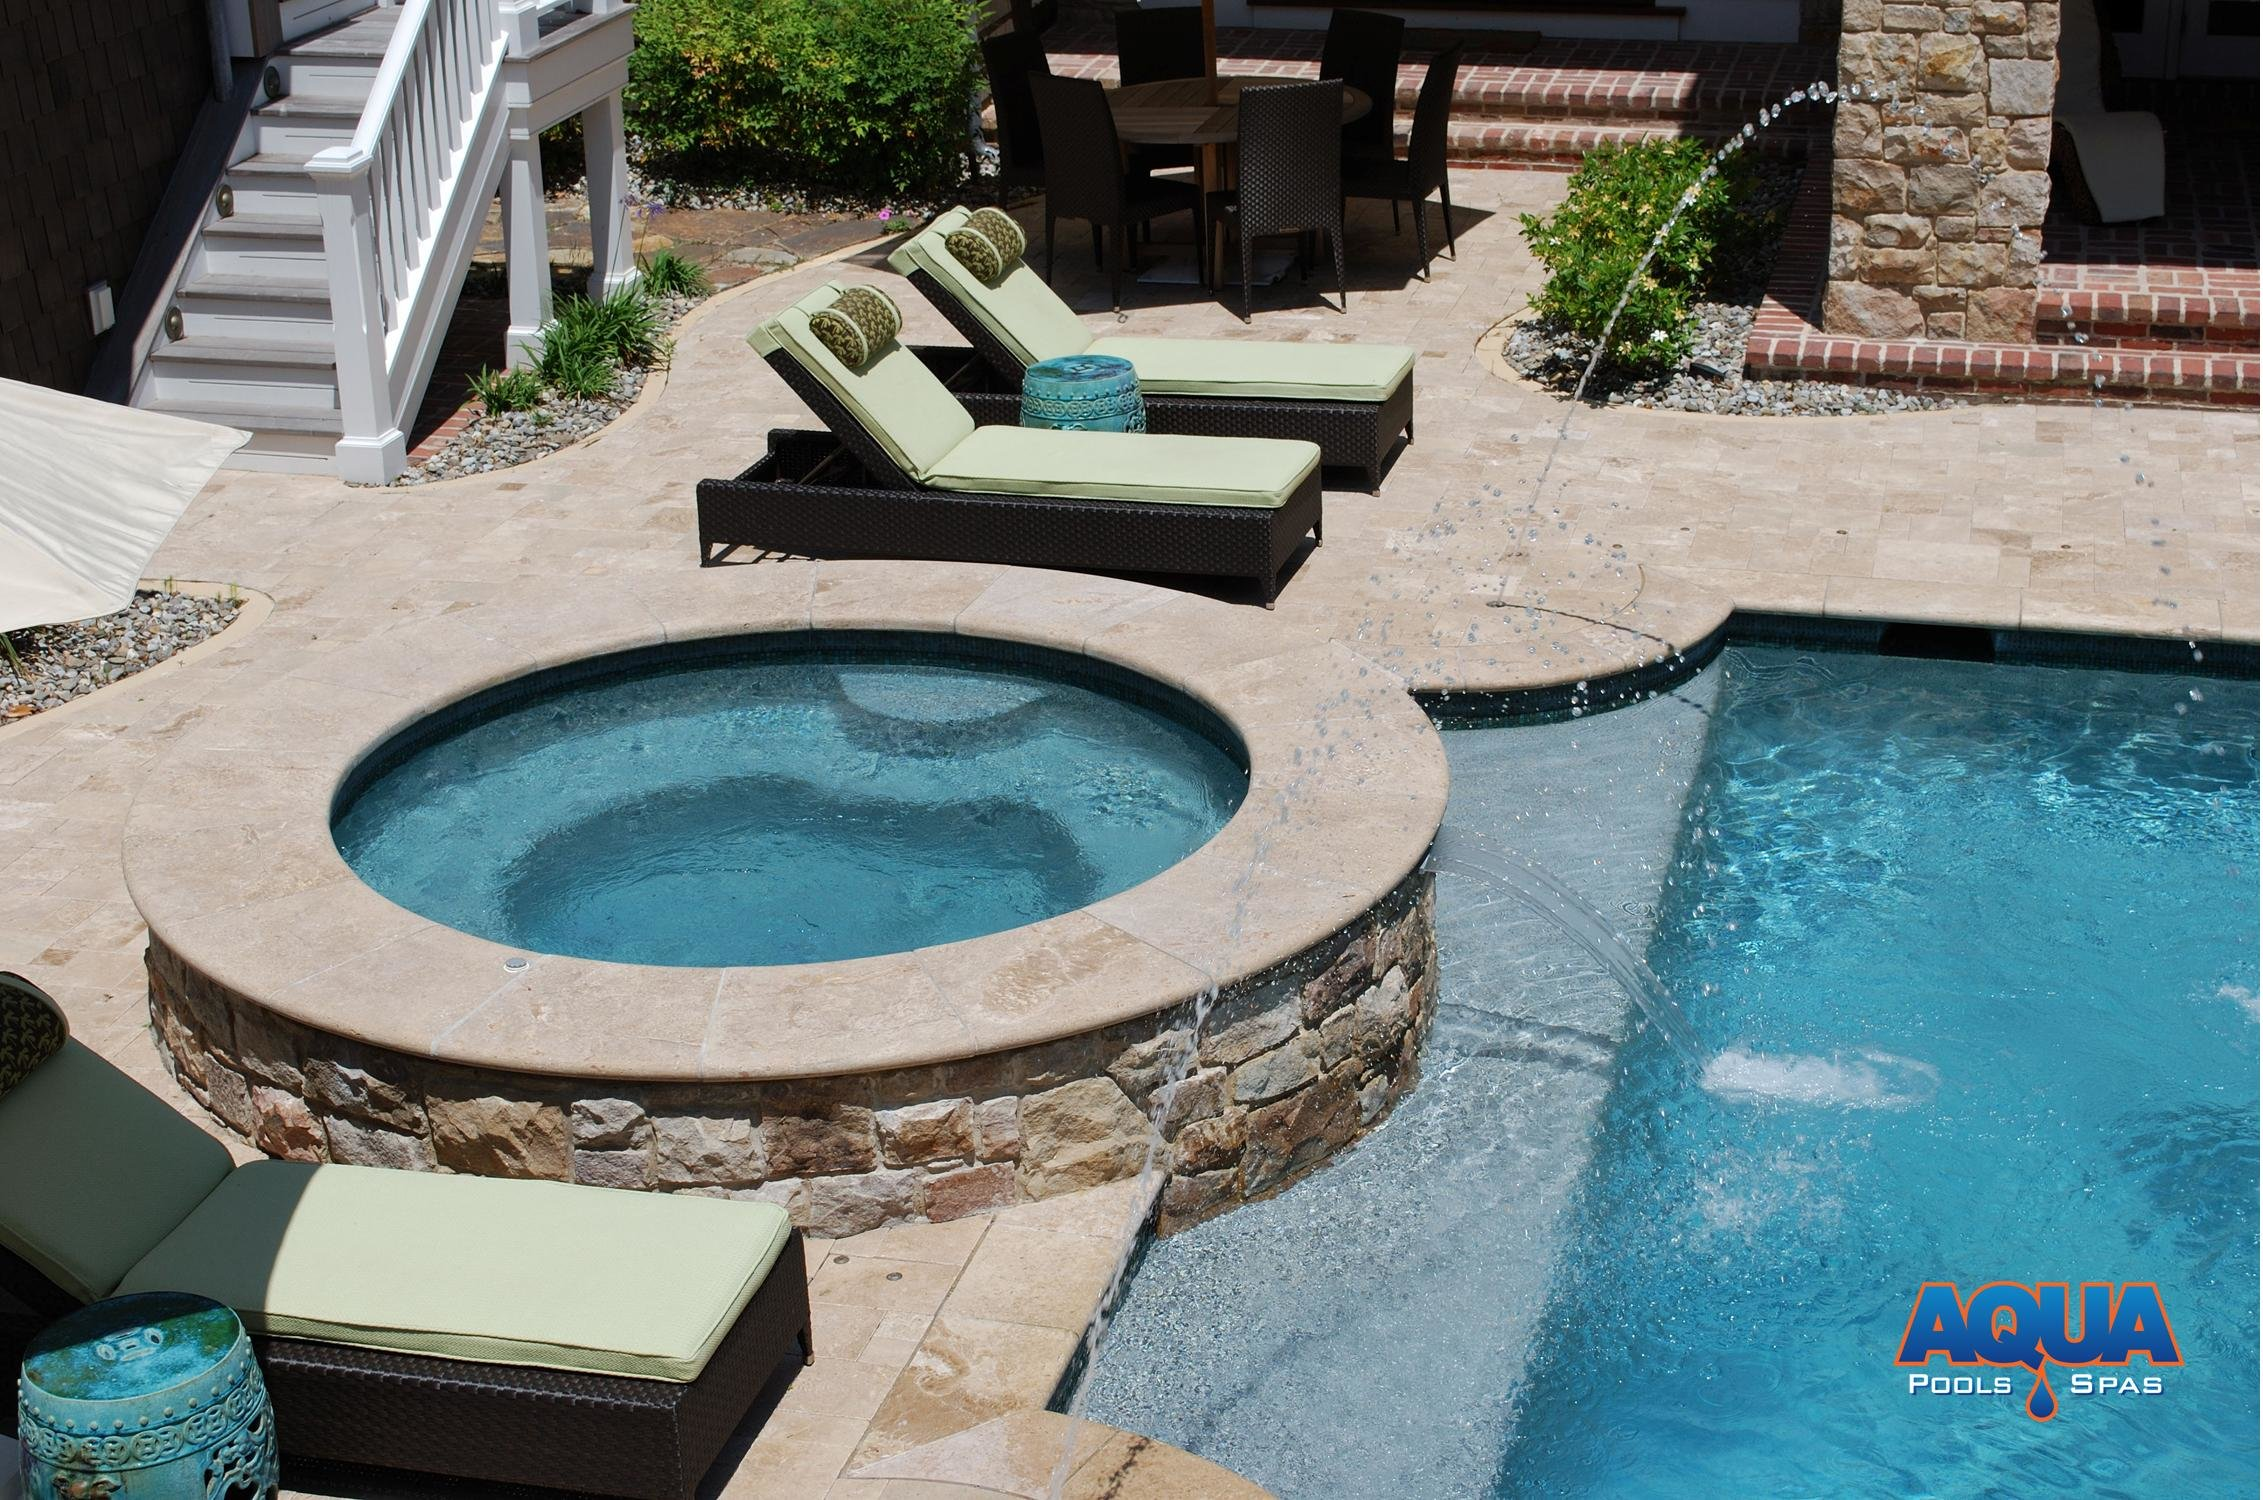 Custom spas custom gunite hot tubs aqua pools spas for Custom inground pools